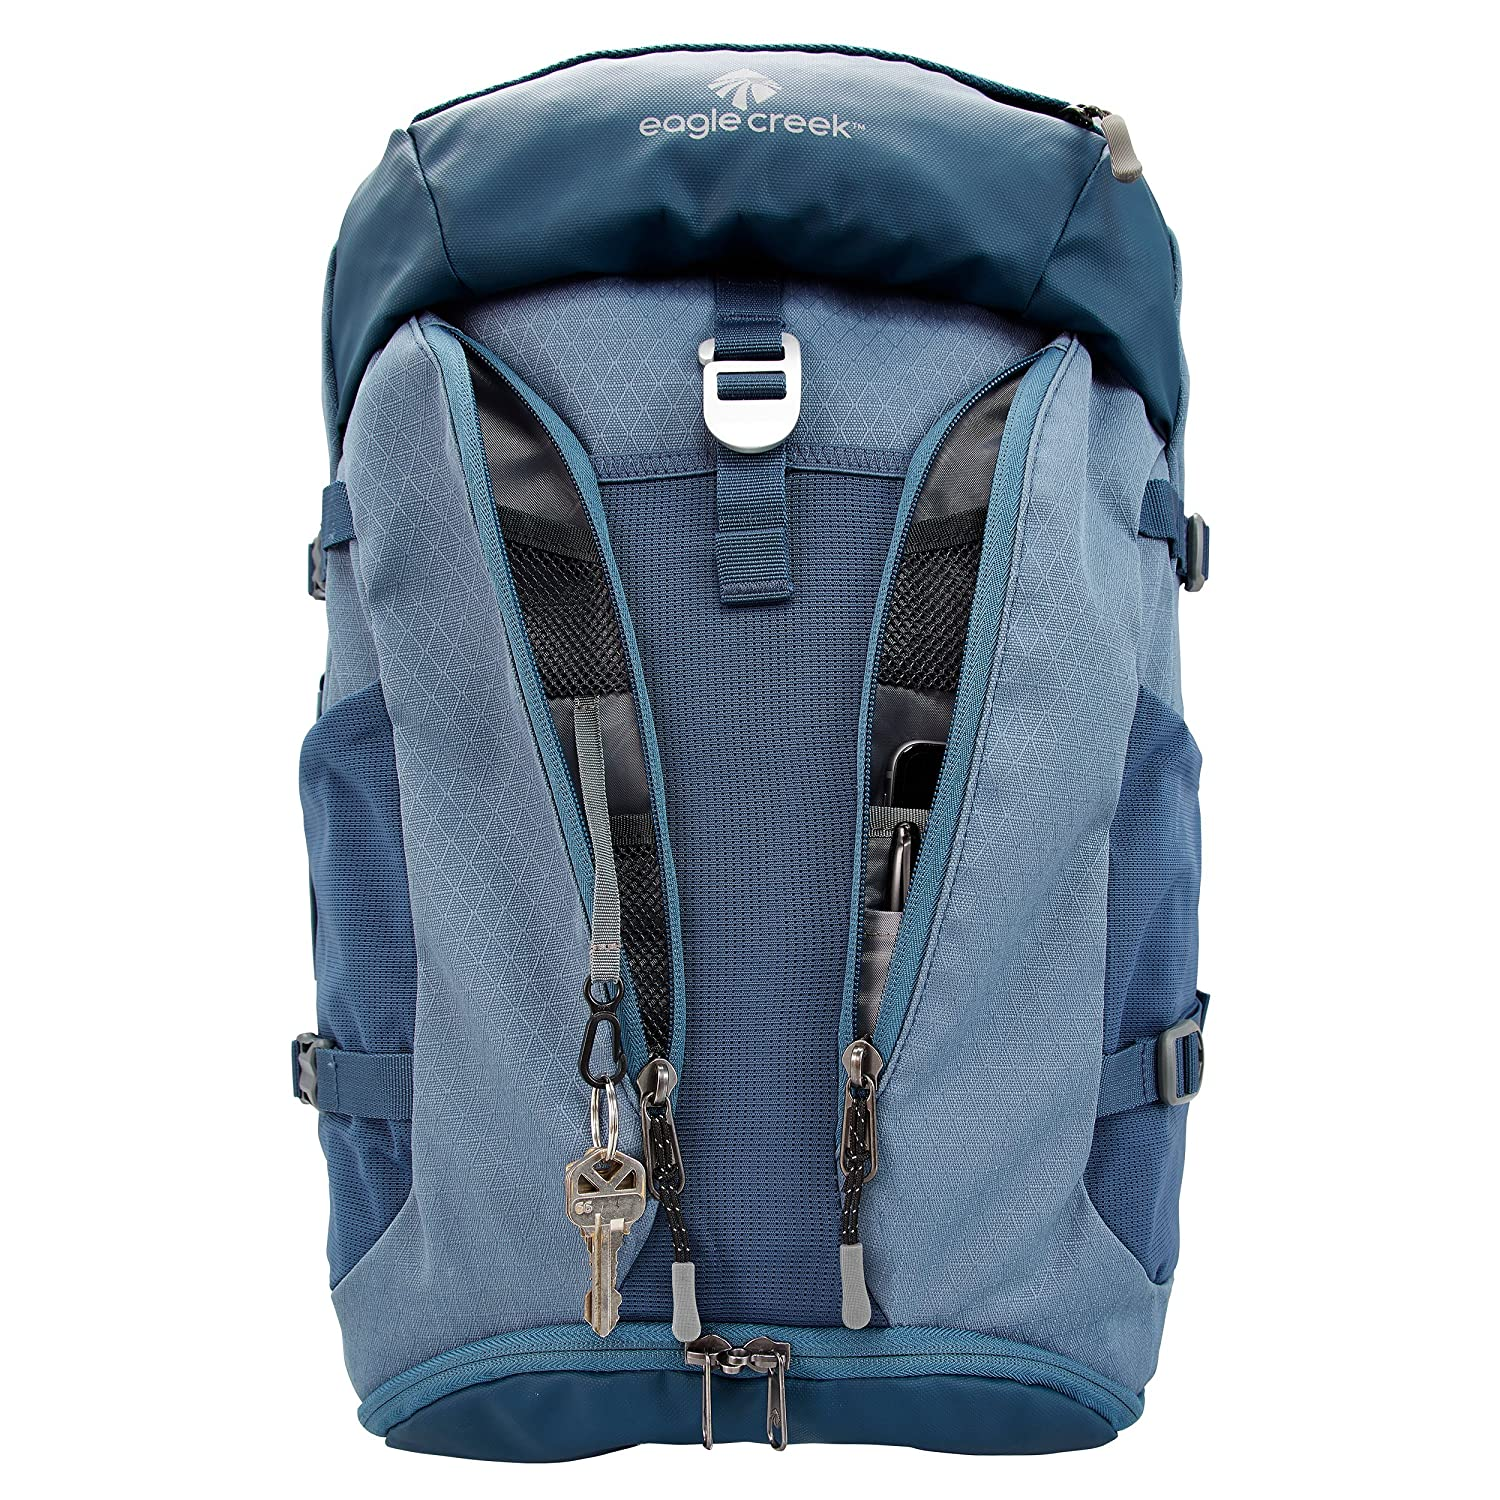 Concord Eagle Creek Global Companion 40L Womens Backpack Travel Water Resistant Mulituse-17in Laptop Carry-On Luggage